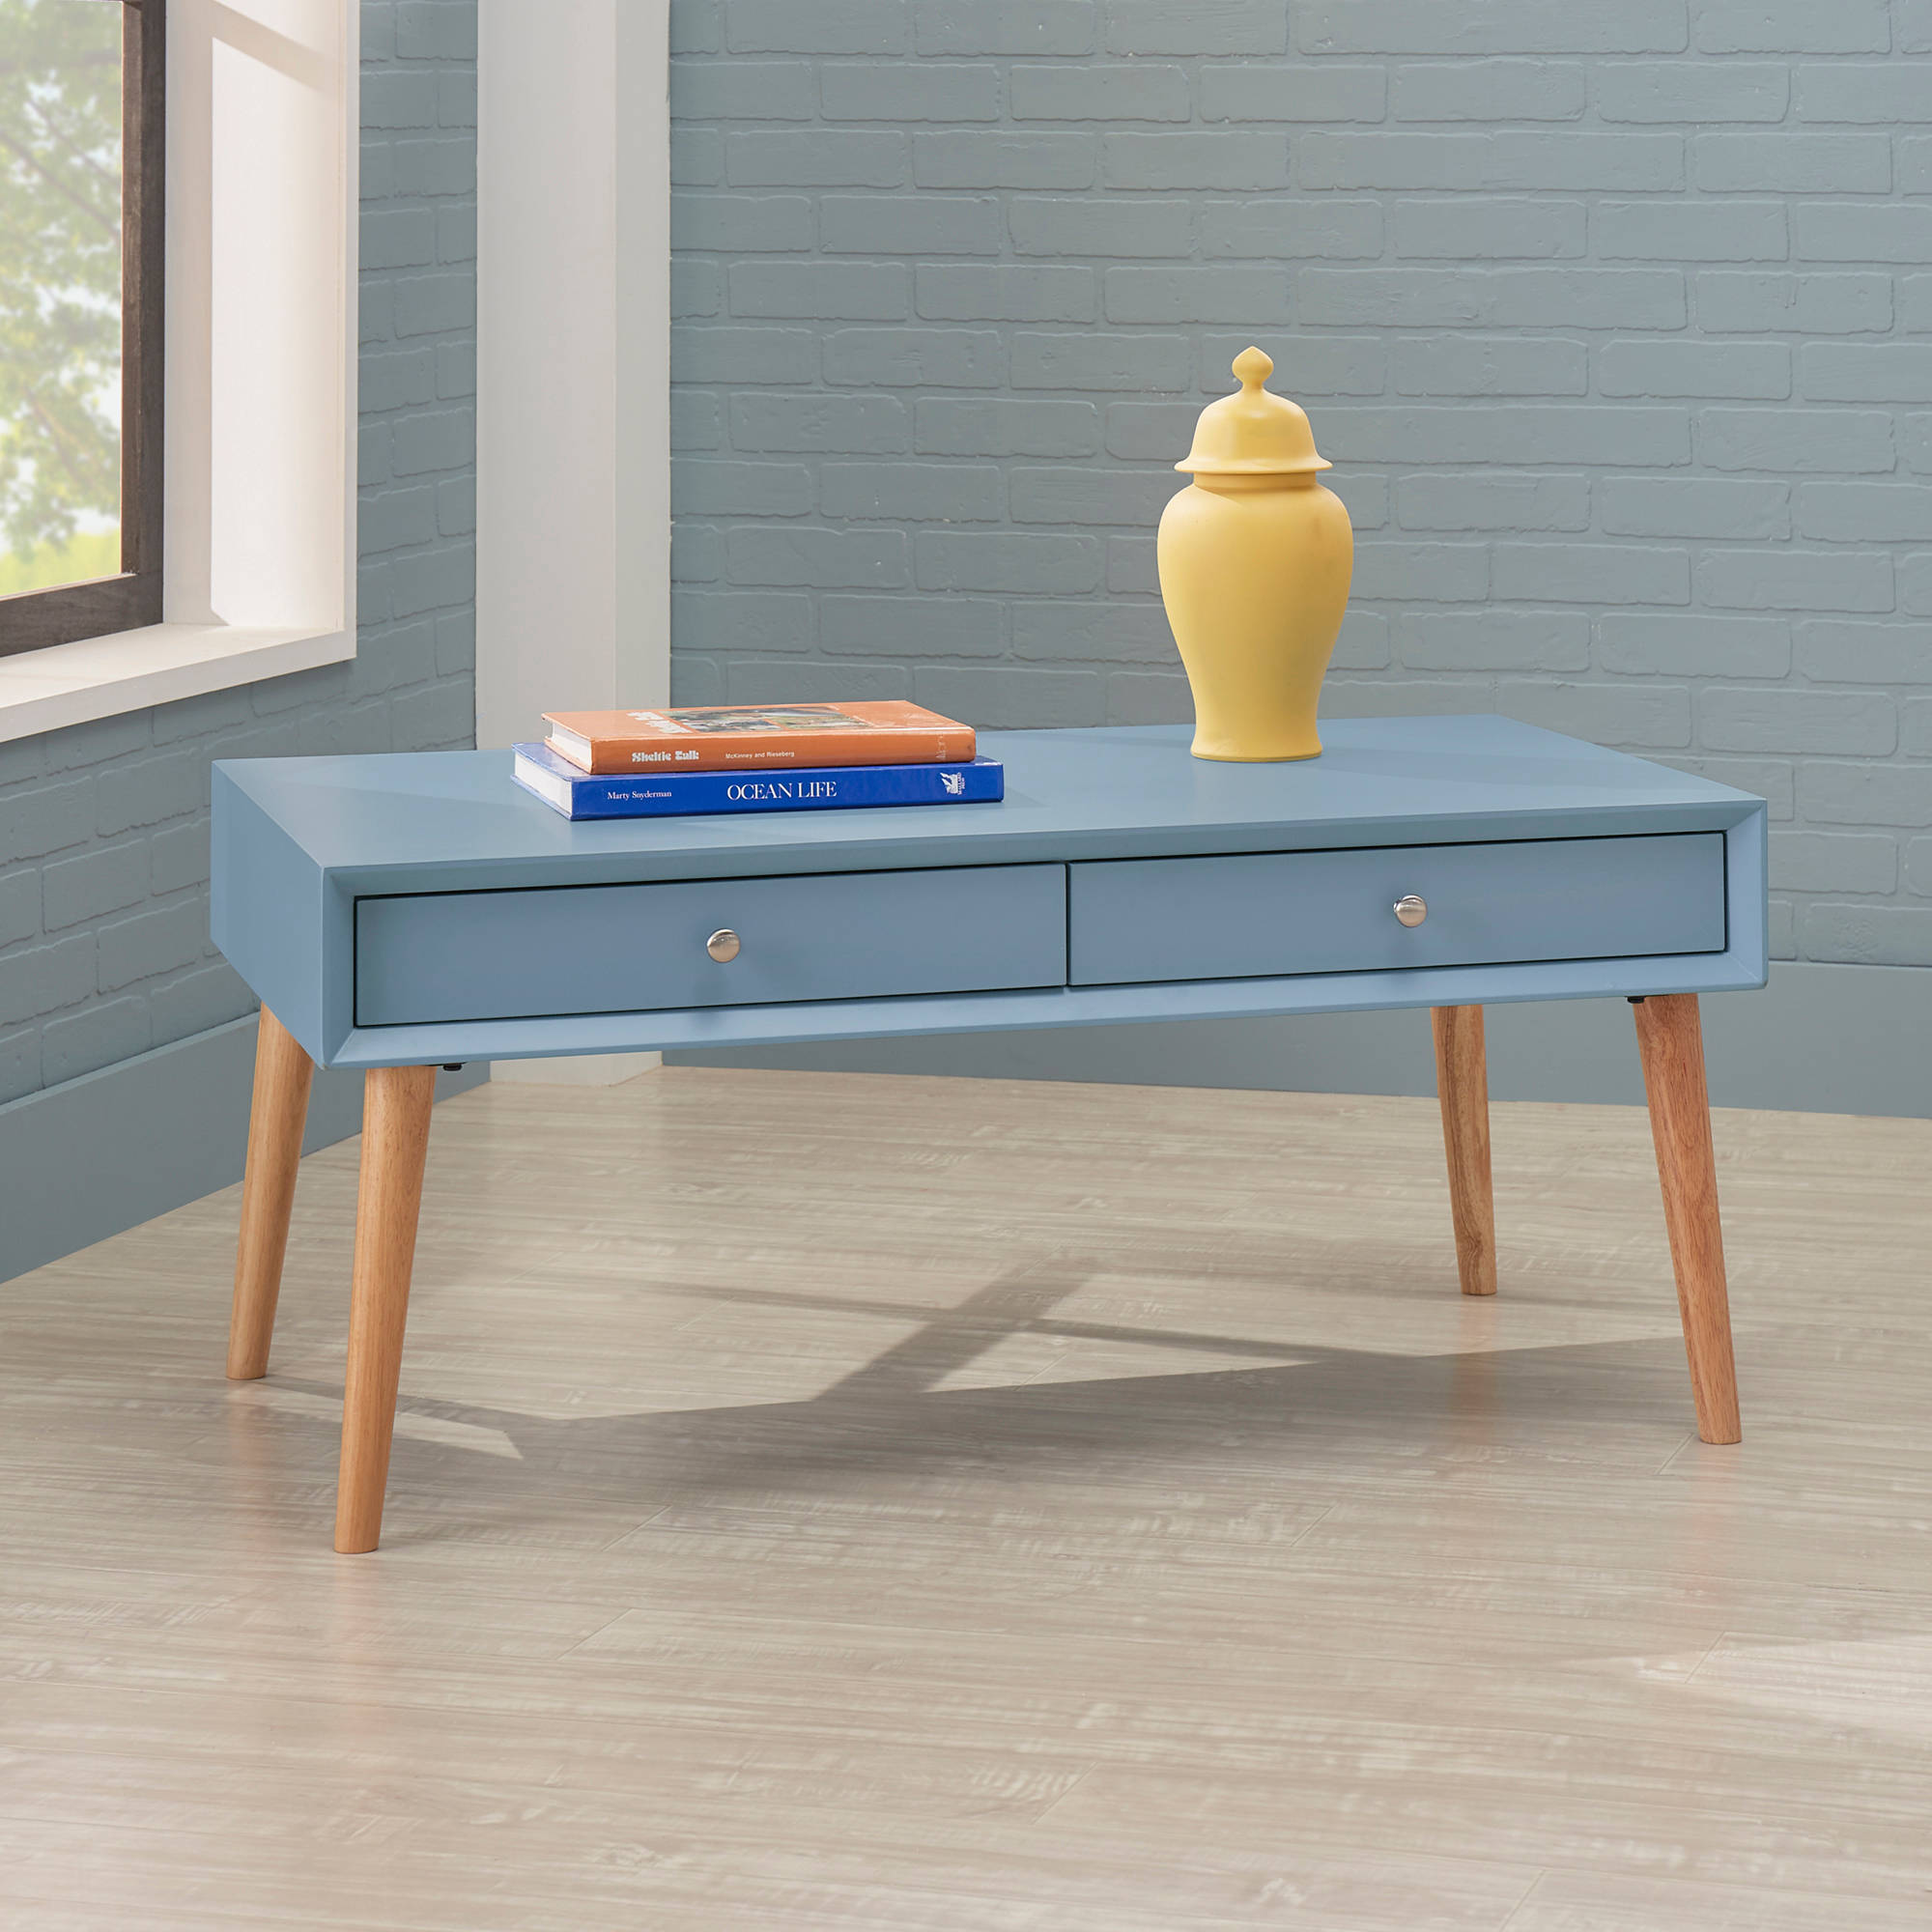 Chelsea Lane Adlai 2-Drawer Coffee Table, Multiple Colors